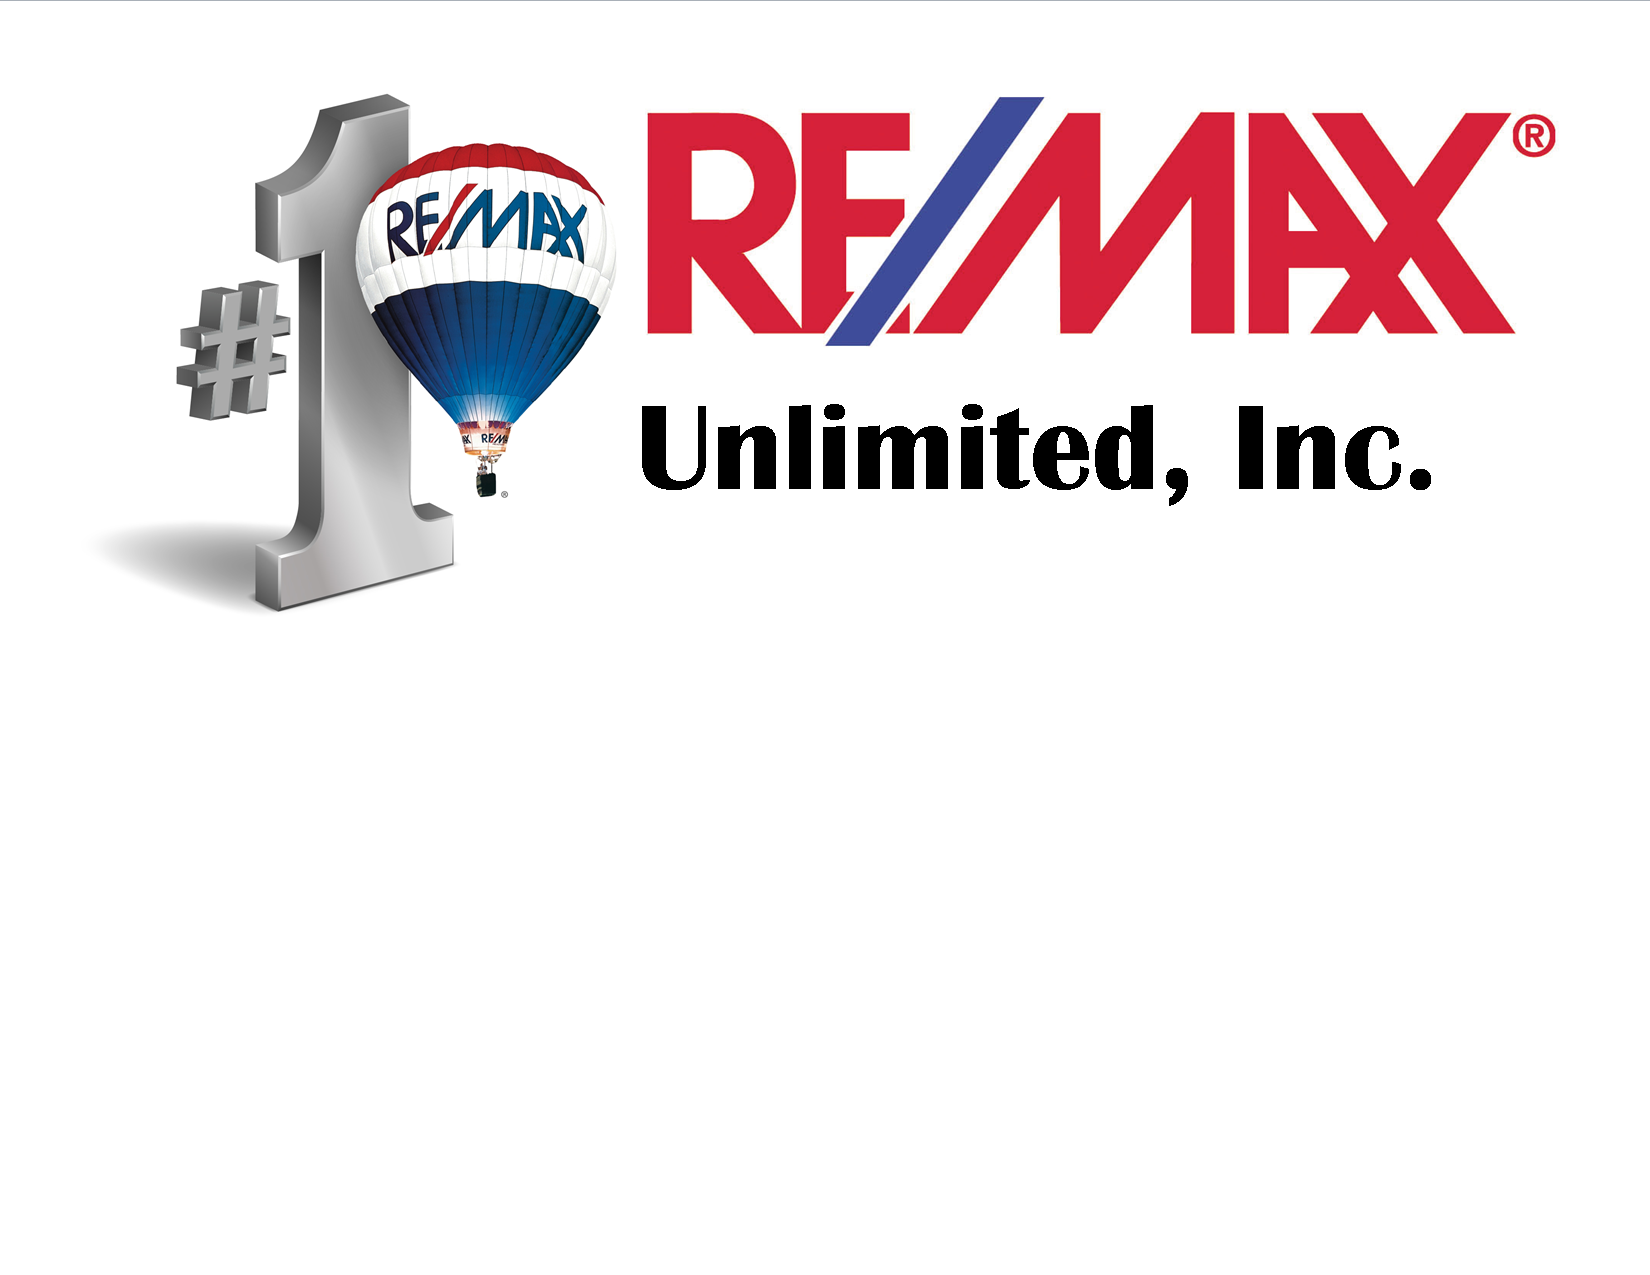 RE/MAX Unlimited Inc